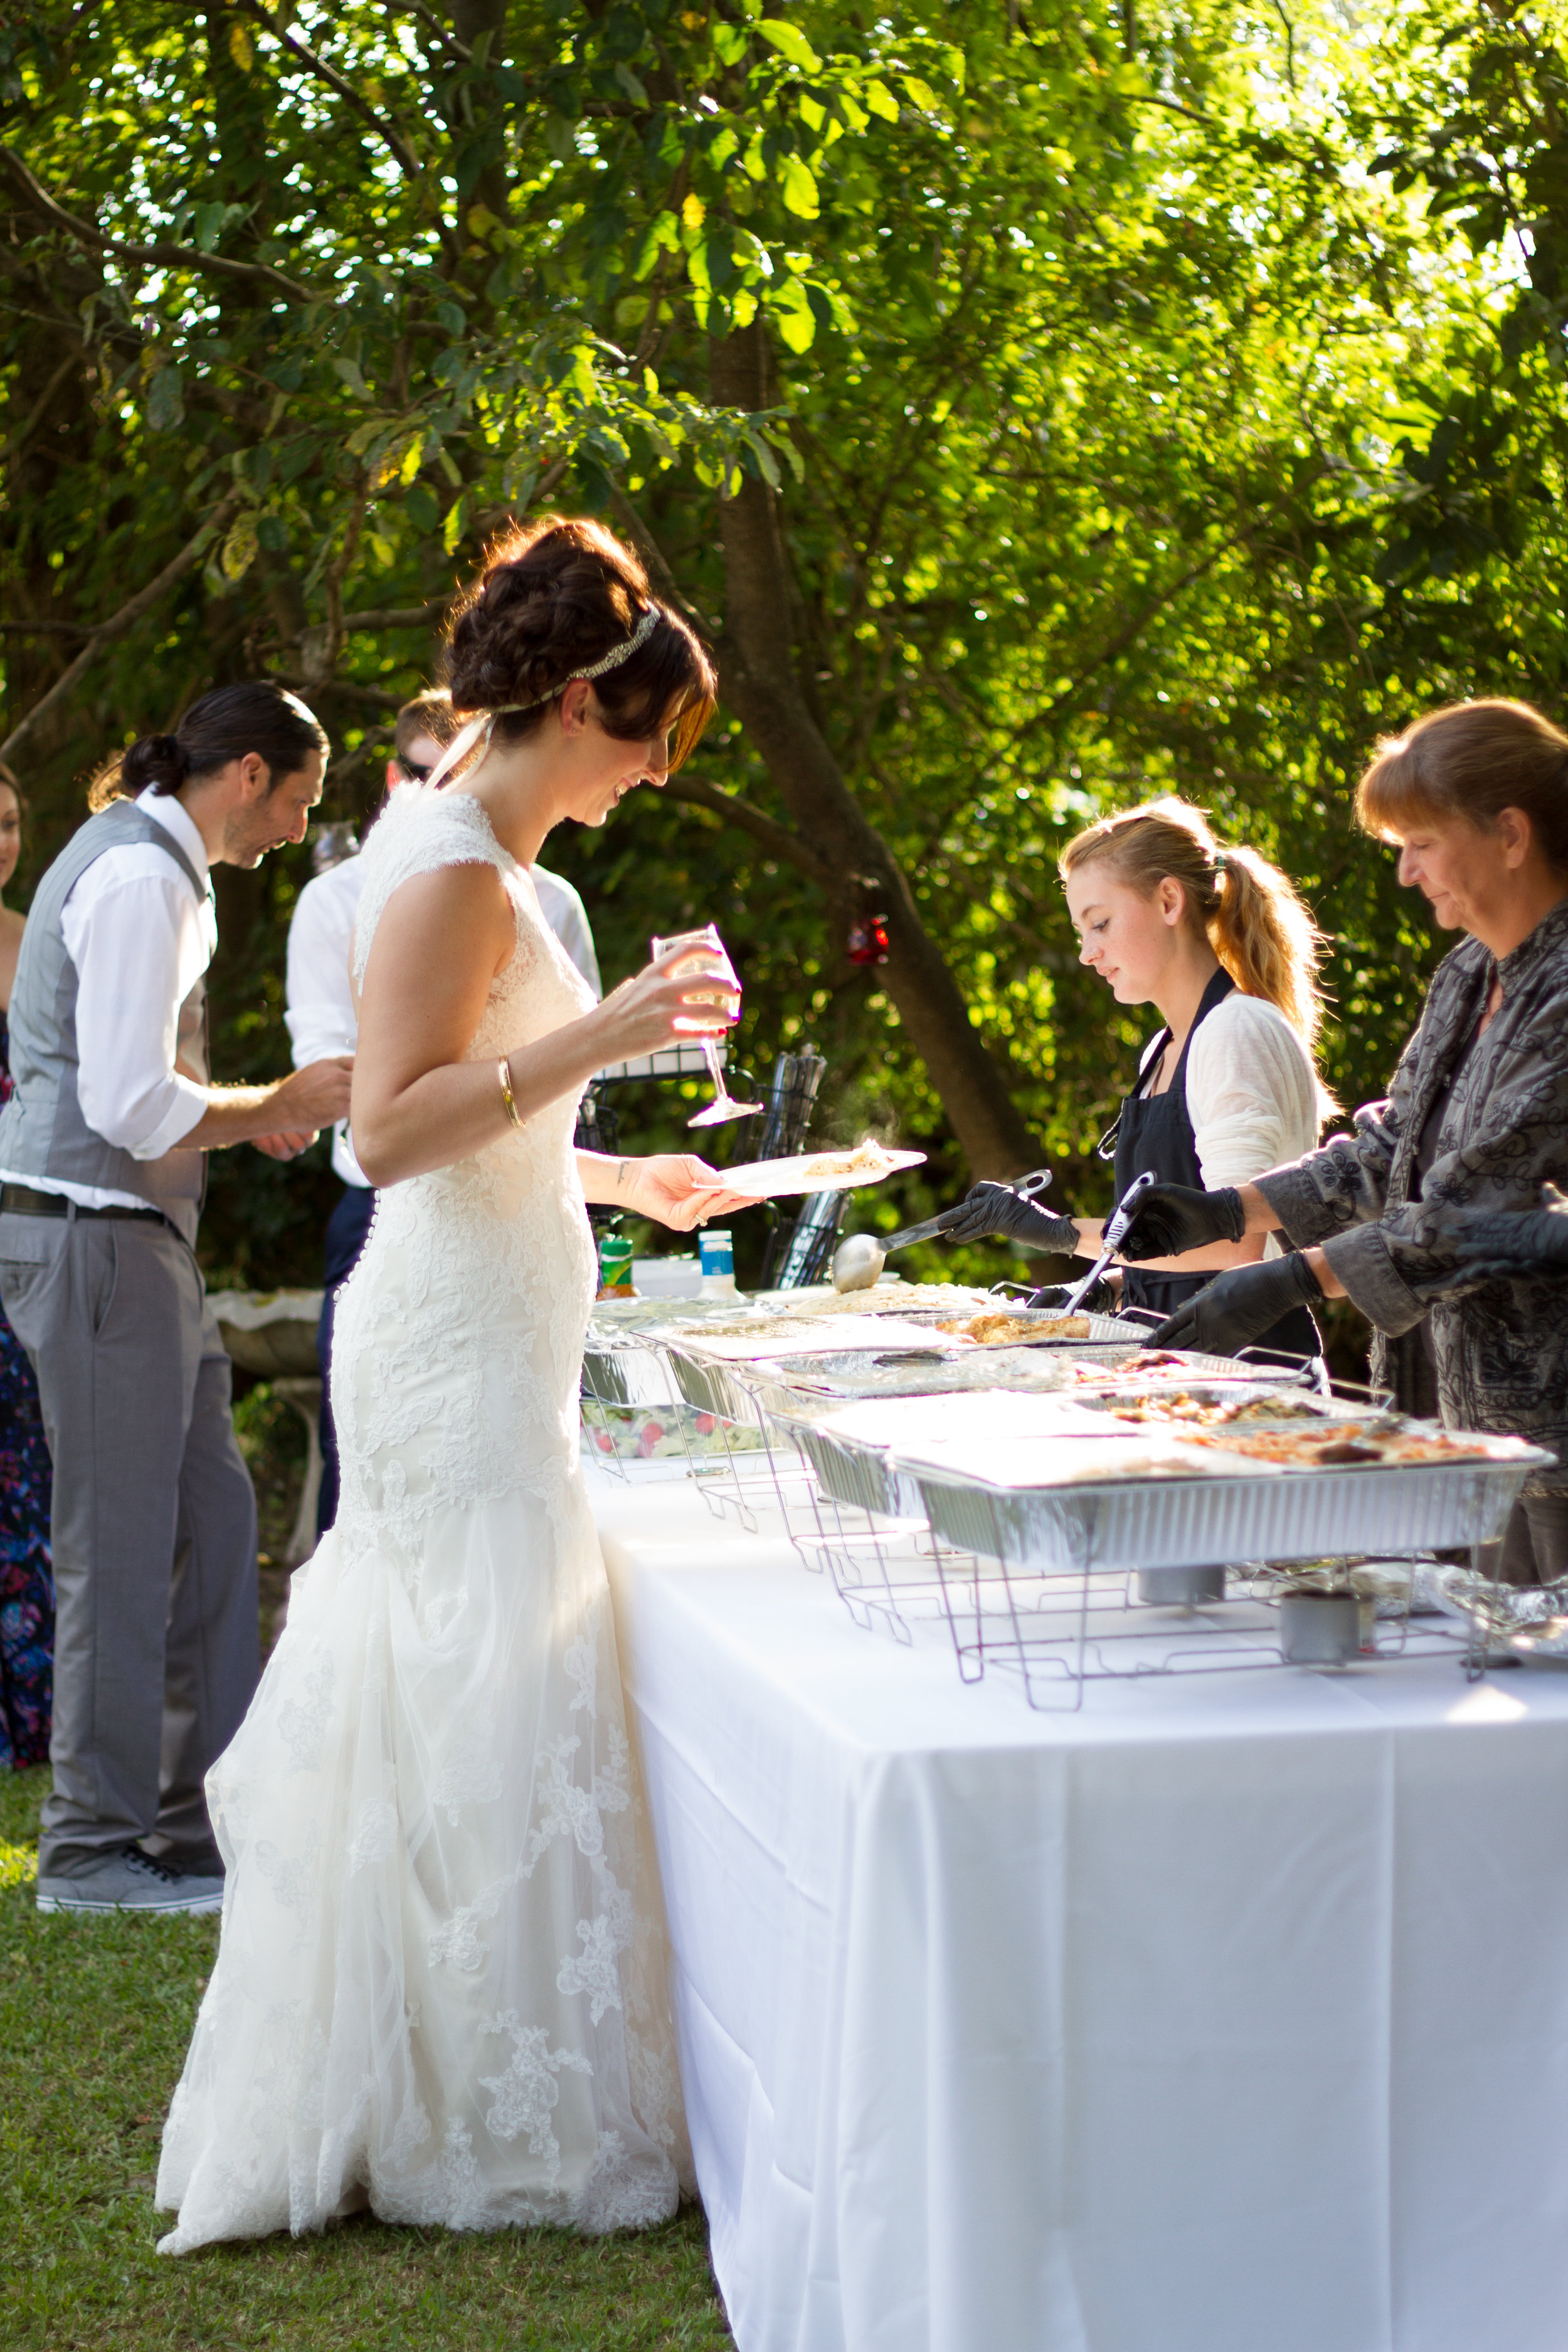 Jacqueline and Shawn Wedding (331 of 597).jpg